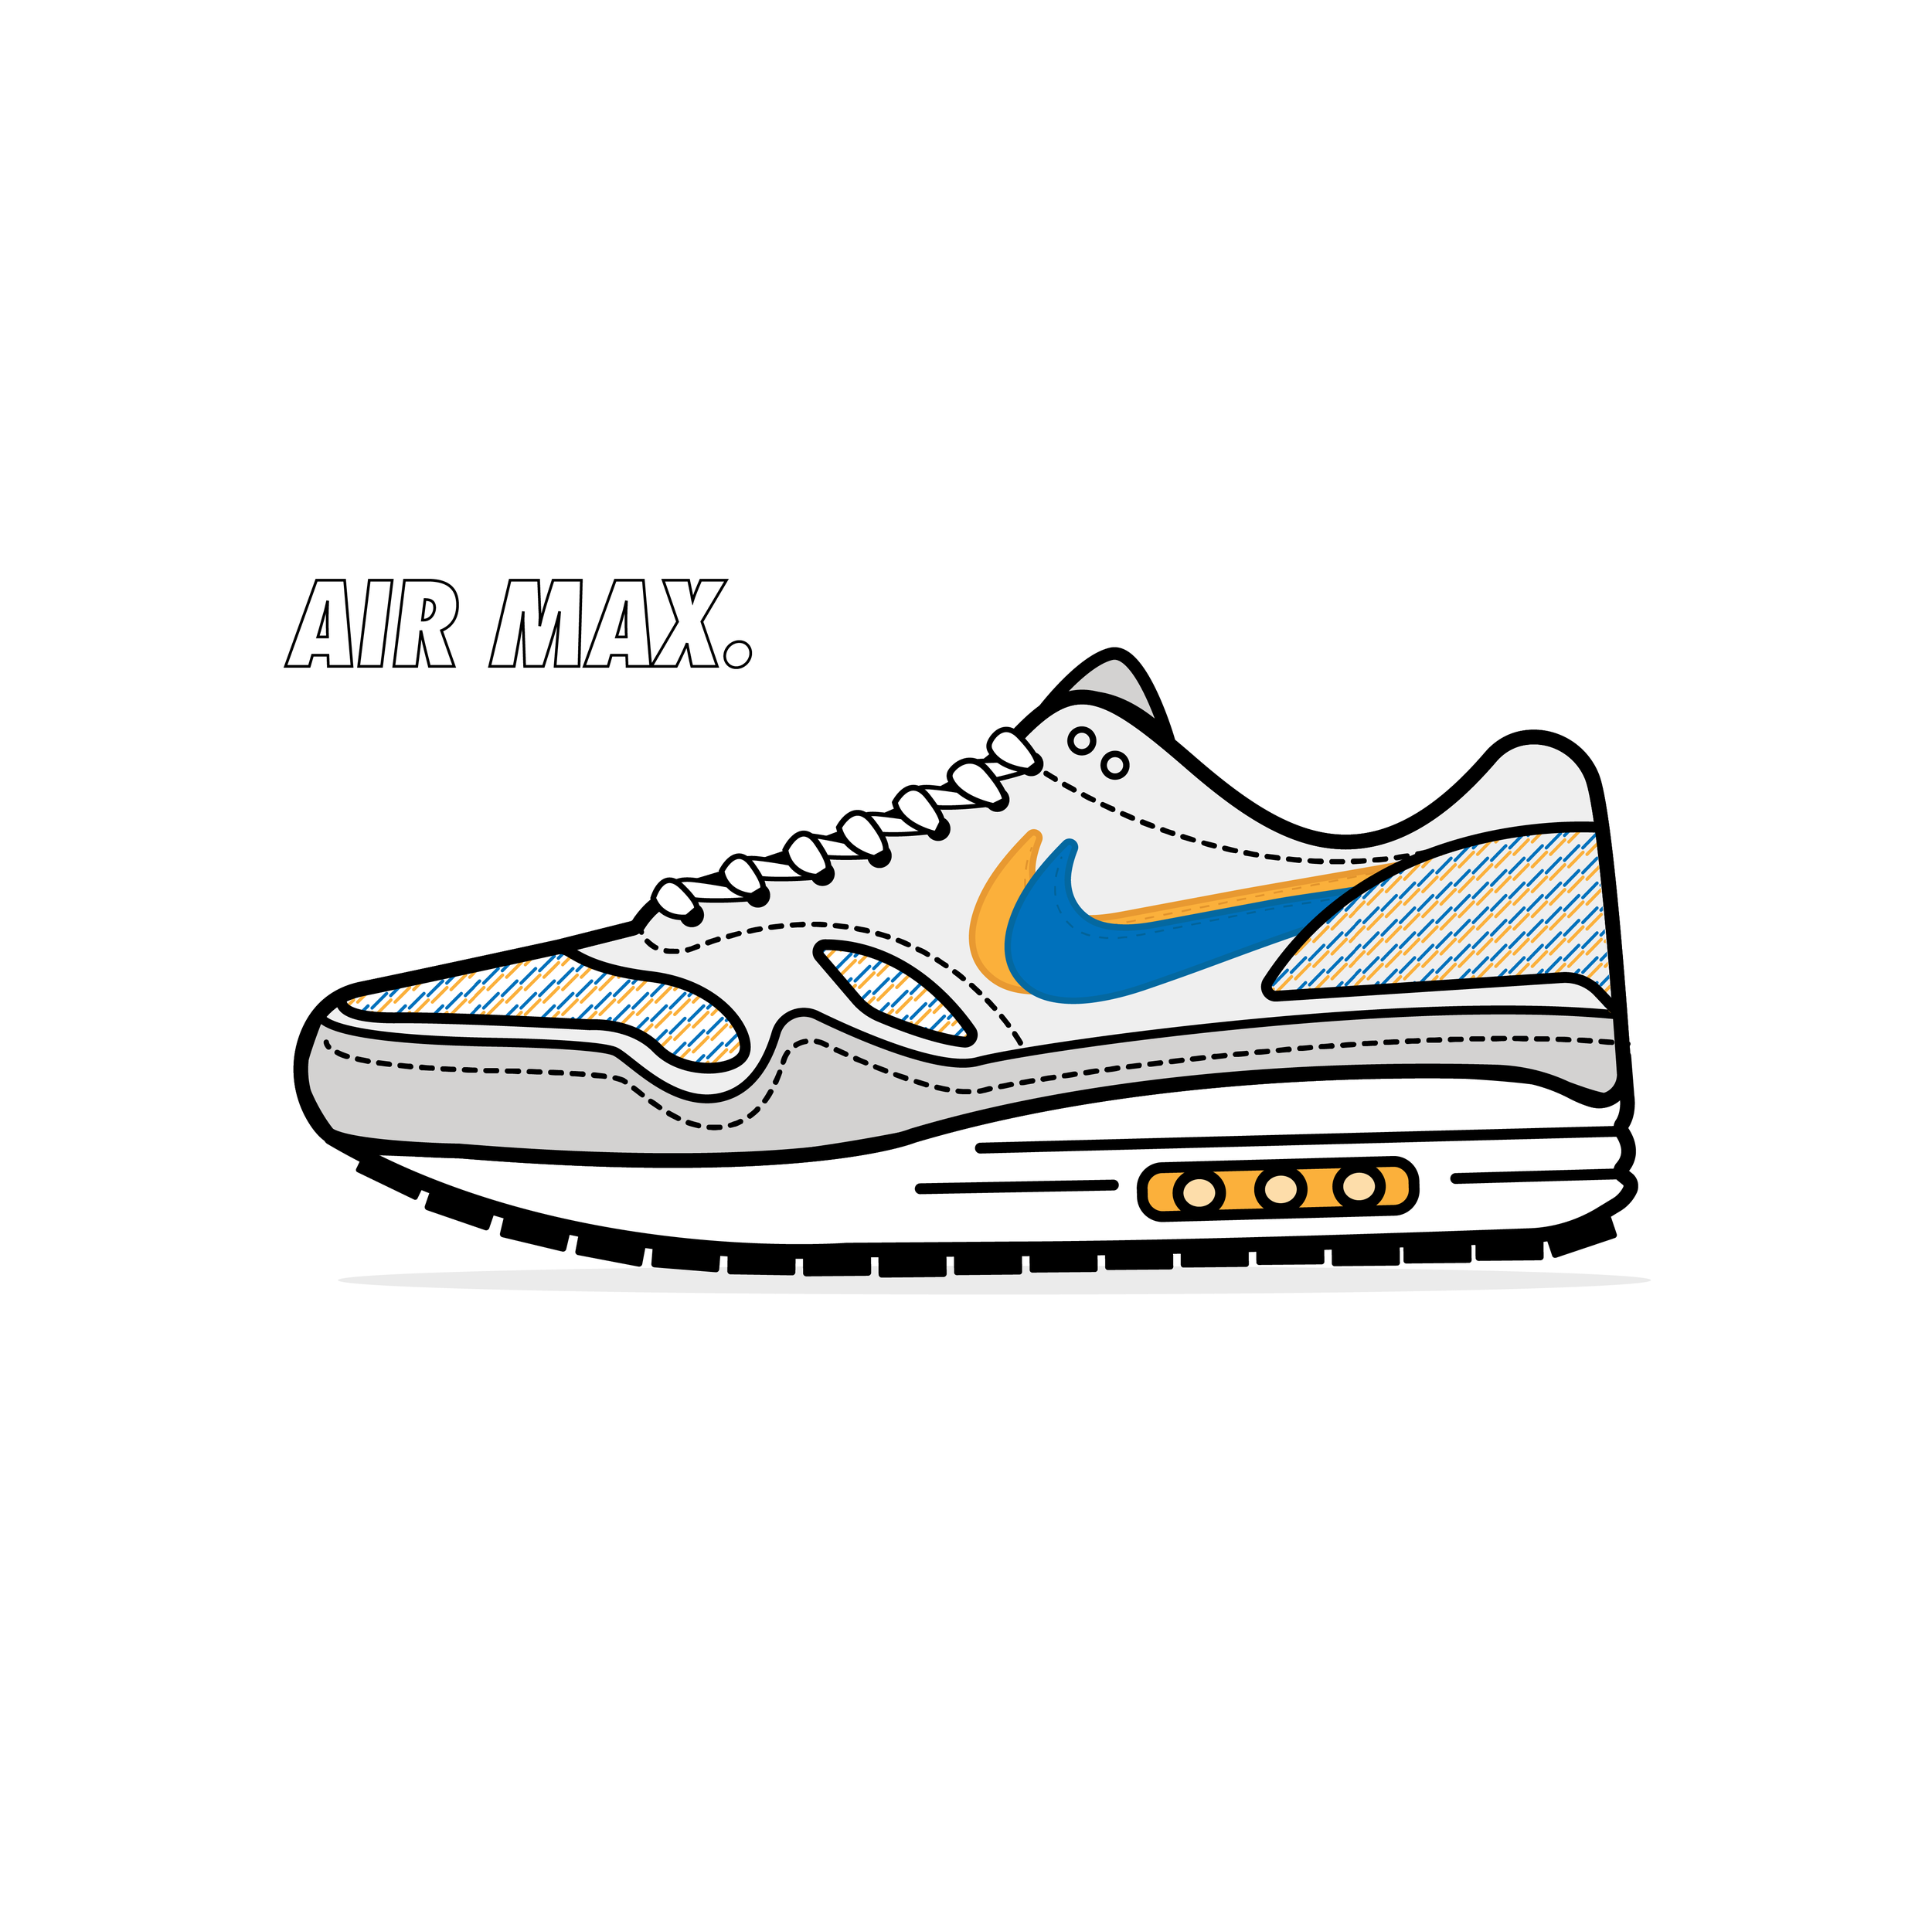 NIKE_TOGETHER_Deliverables-01.png